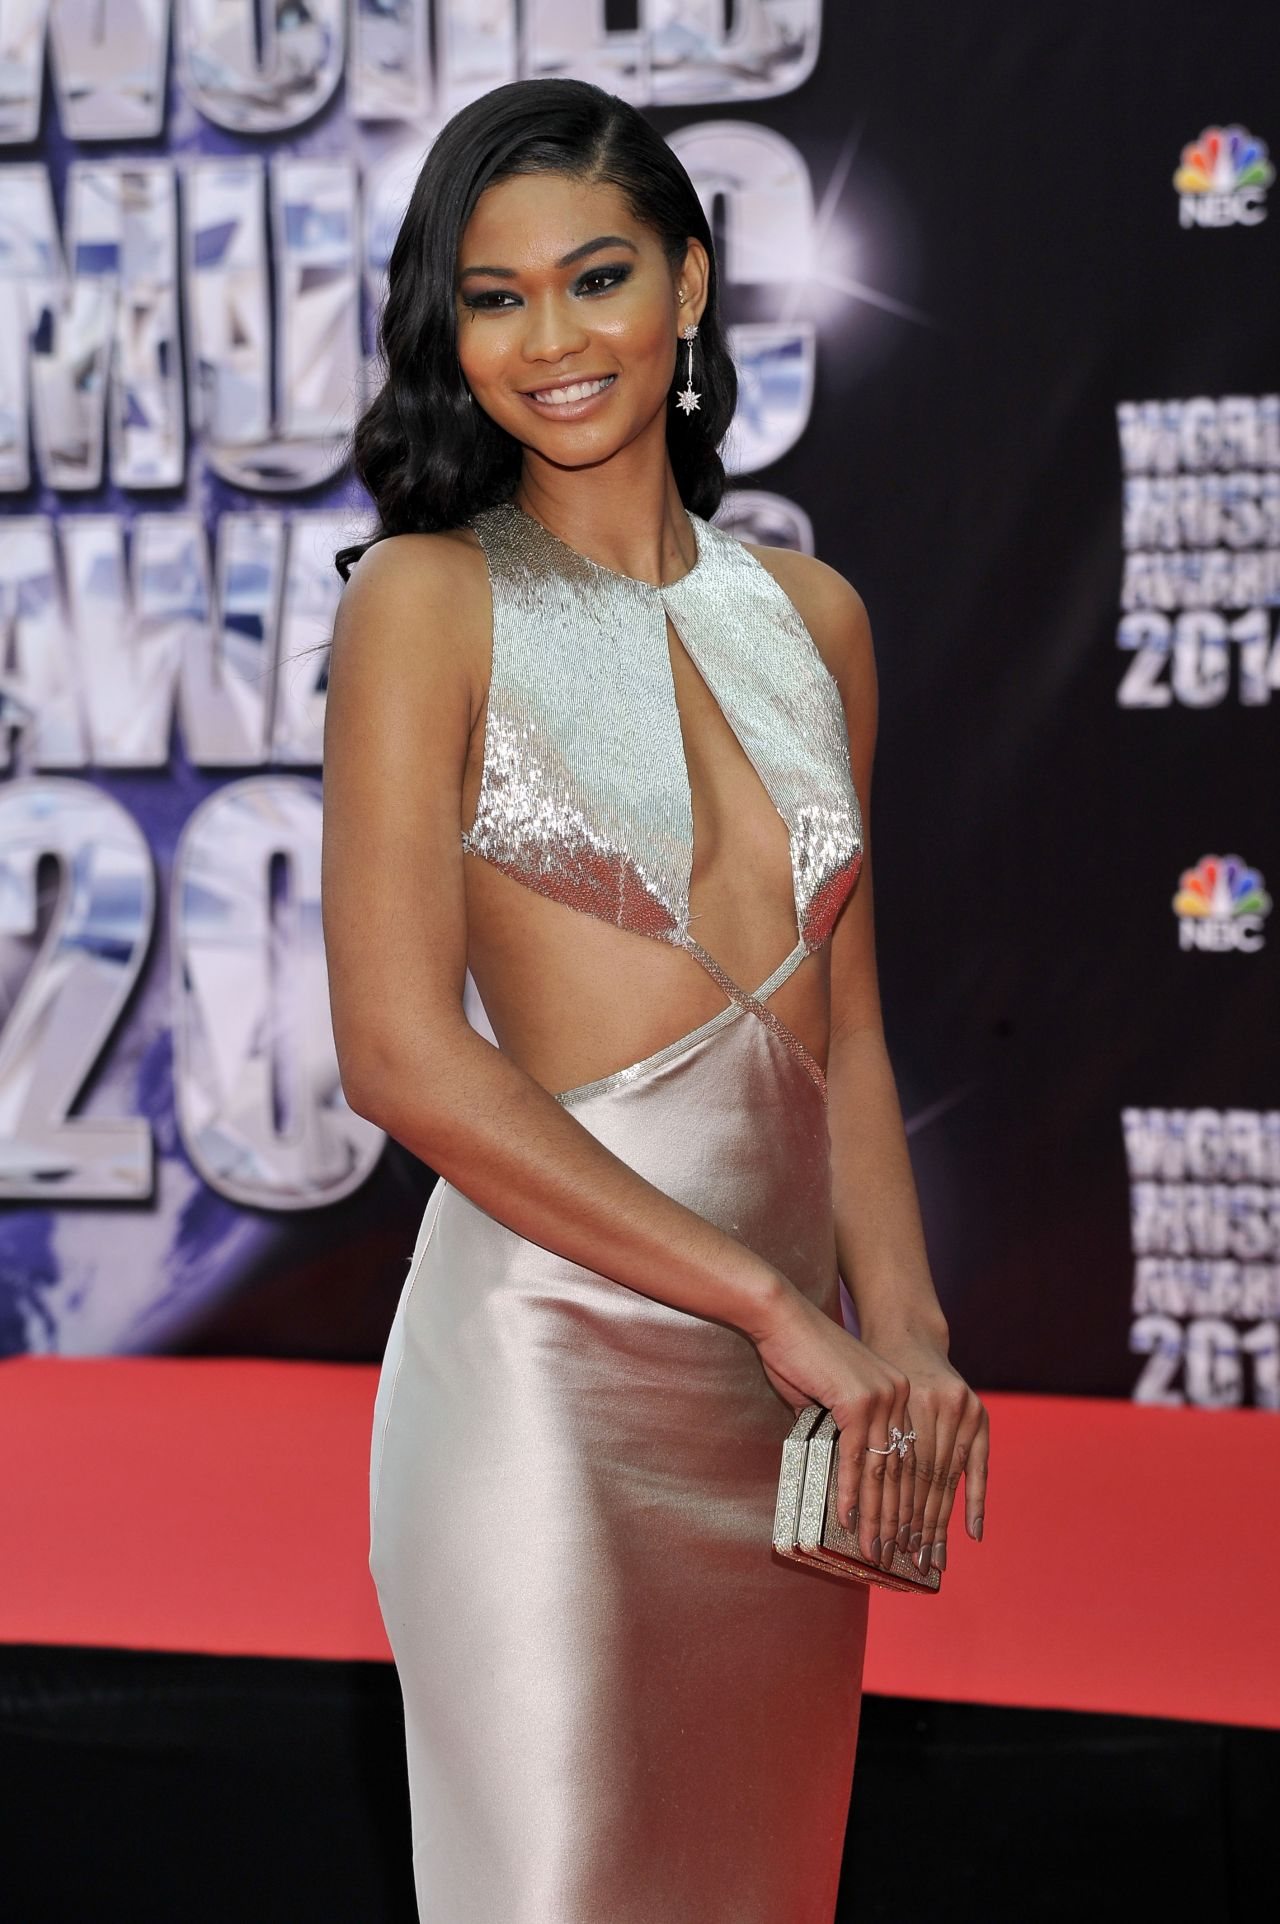 Chanel Iman - World Music Awards 2014